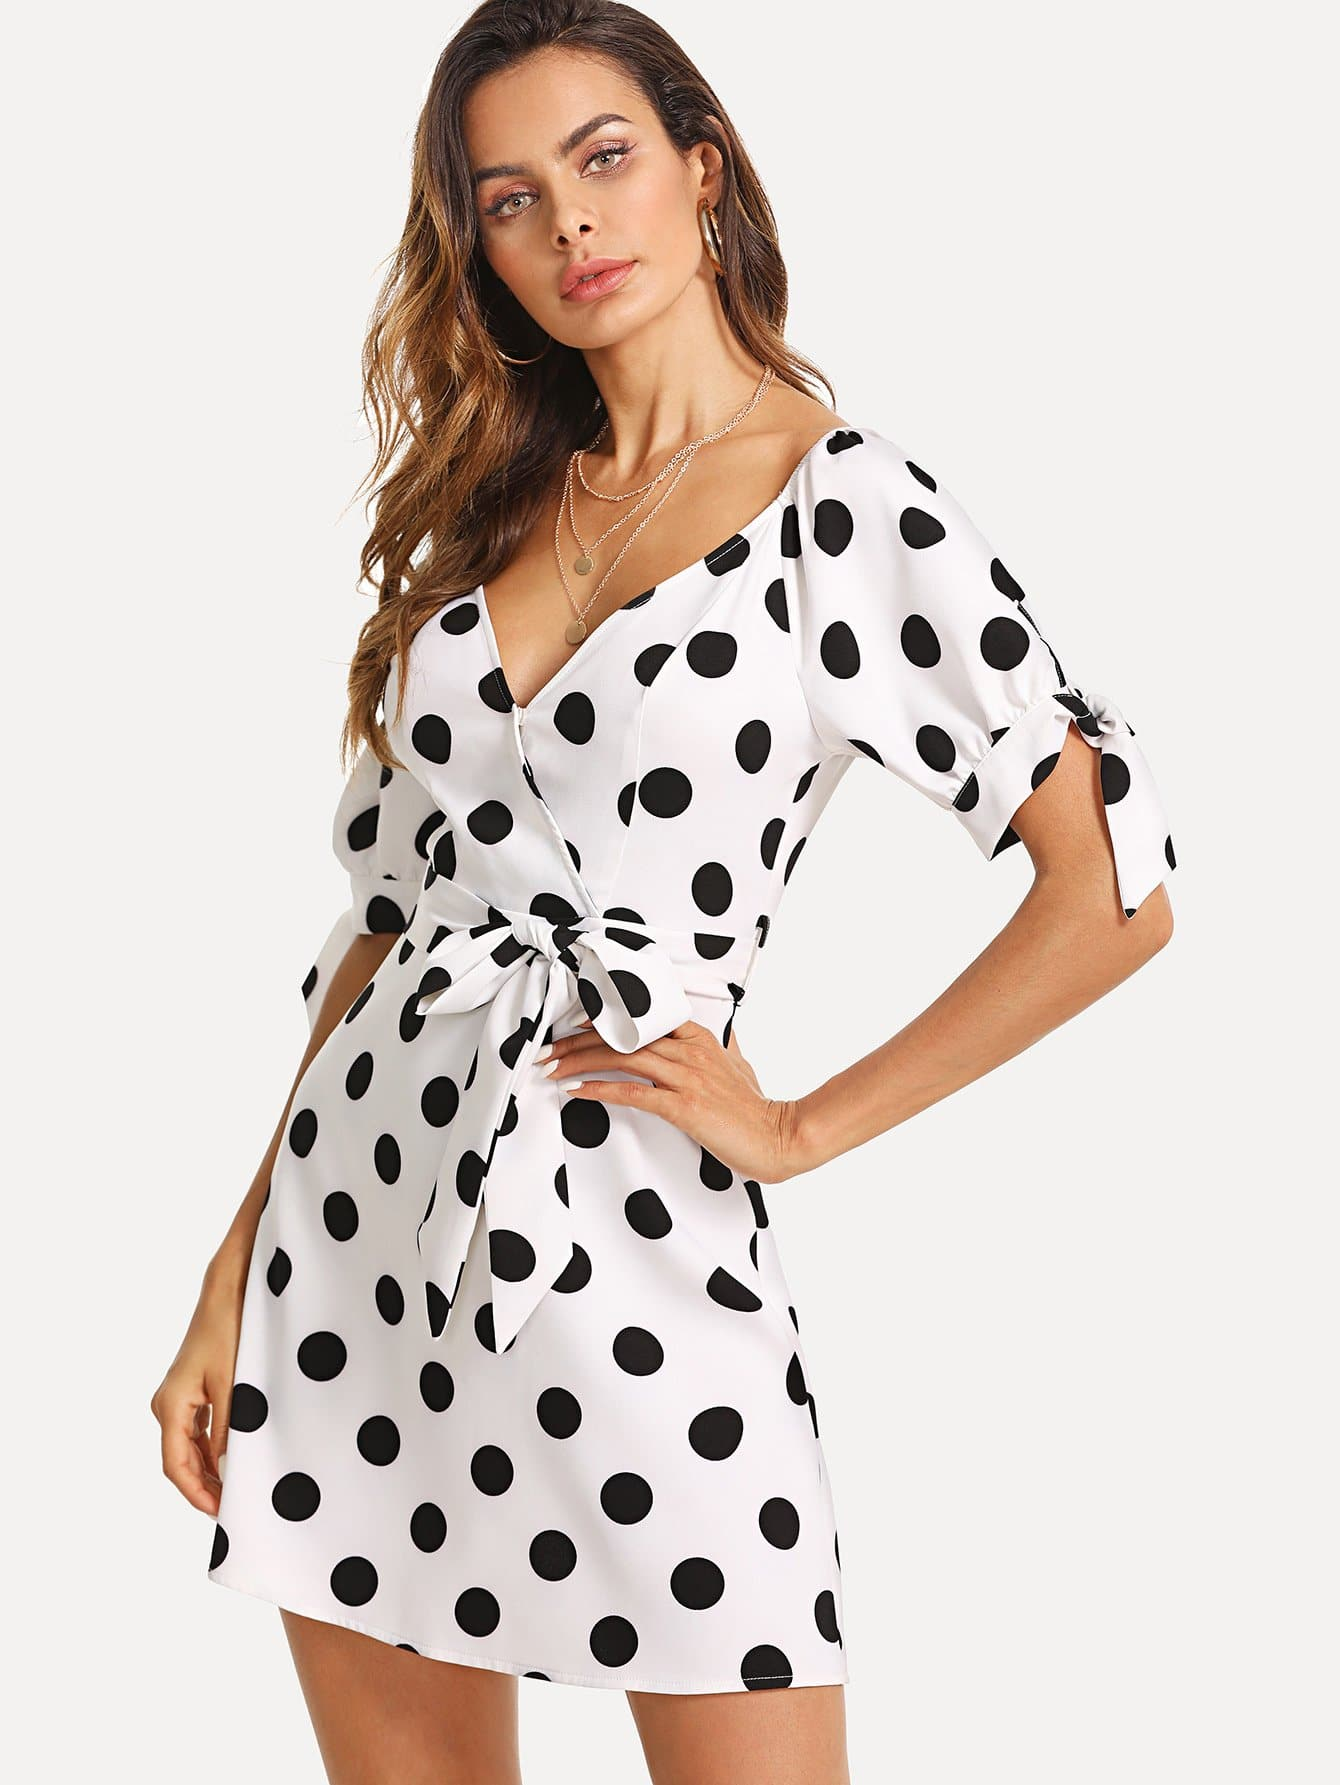 Knot Cuff Polka Dot Wrap Dress knot back polka dot wrap top